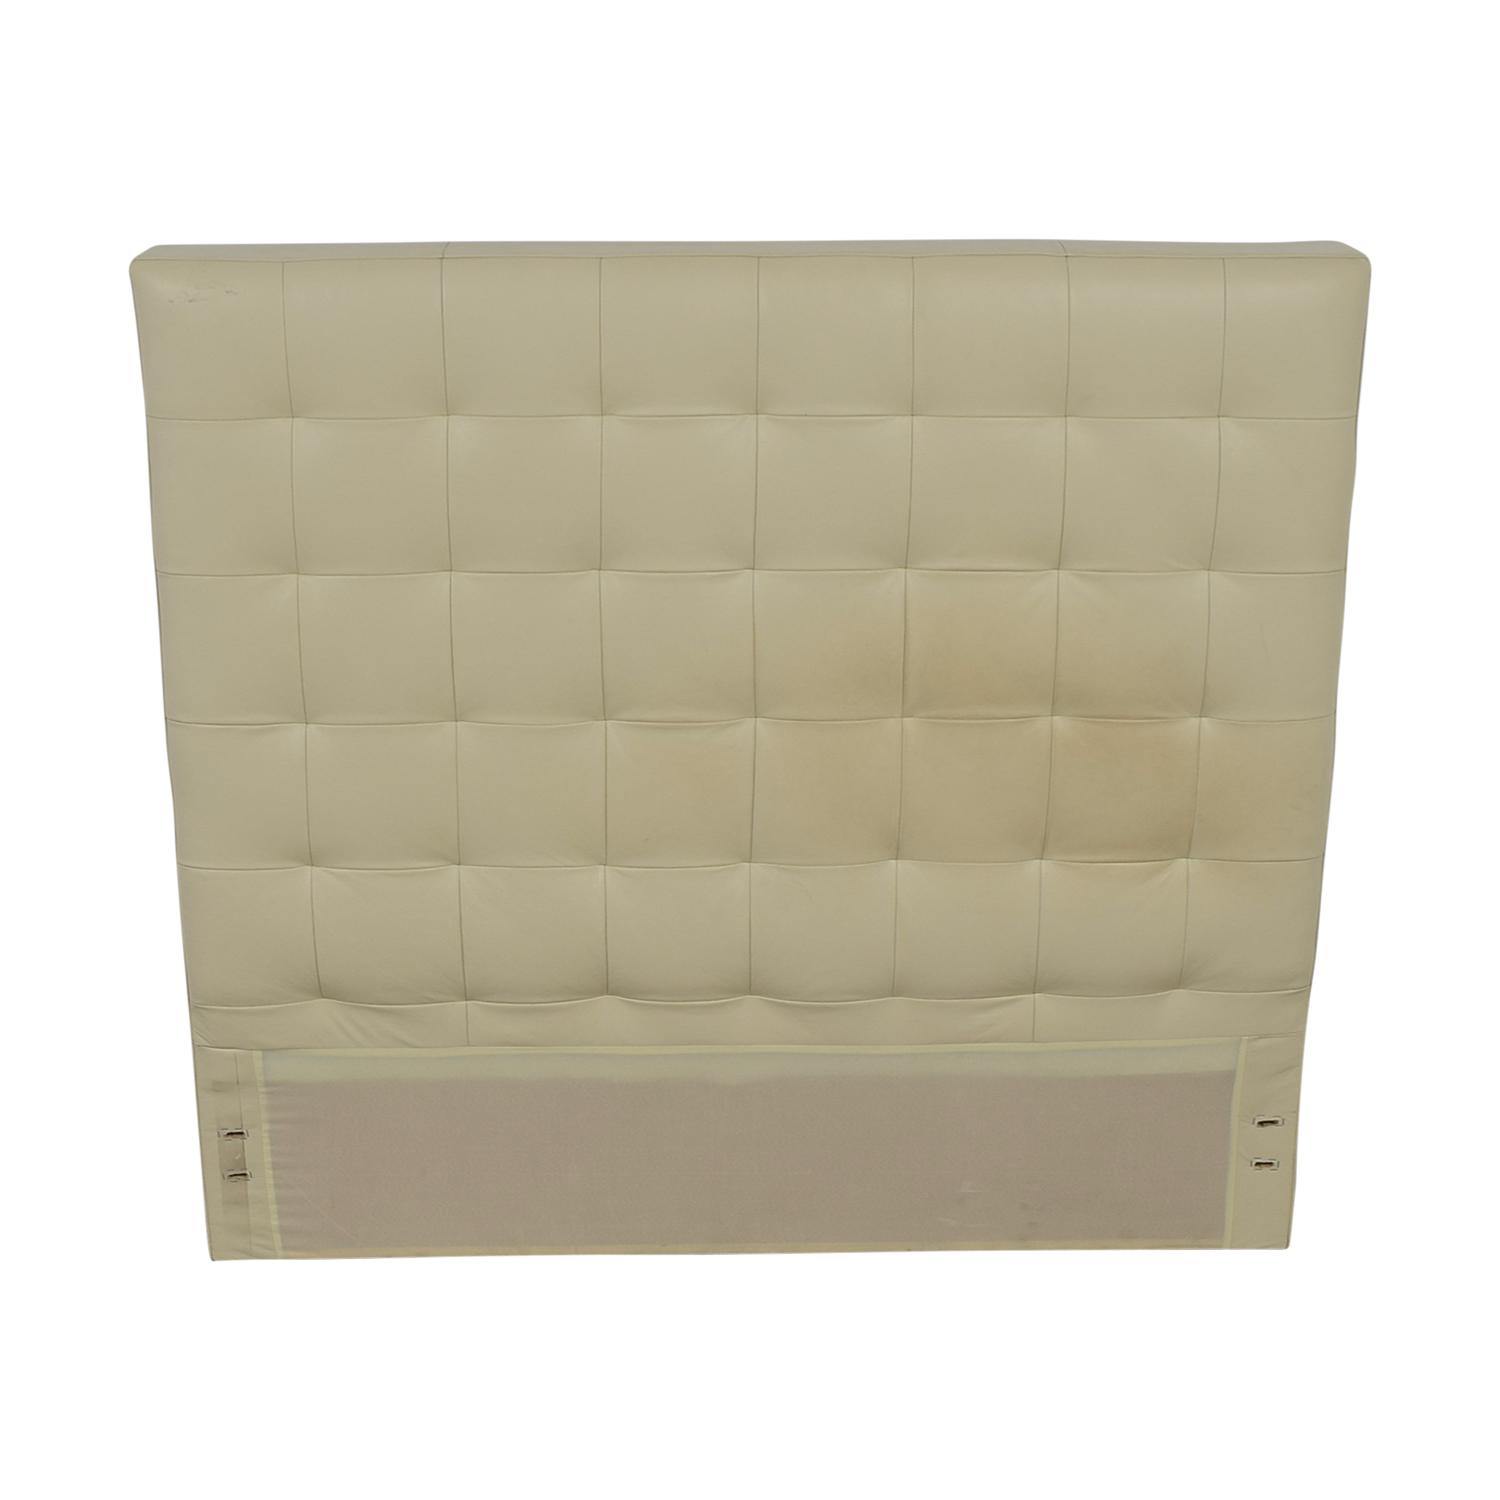 West Elm West Elm White Leather Tufted Queen Headboard for sale